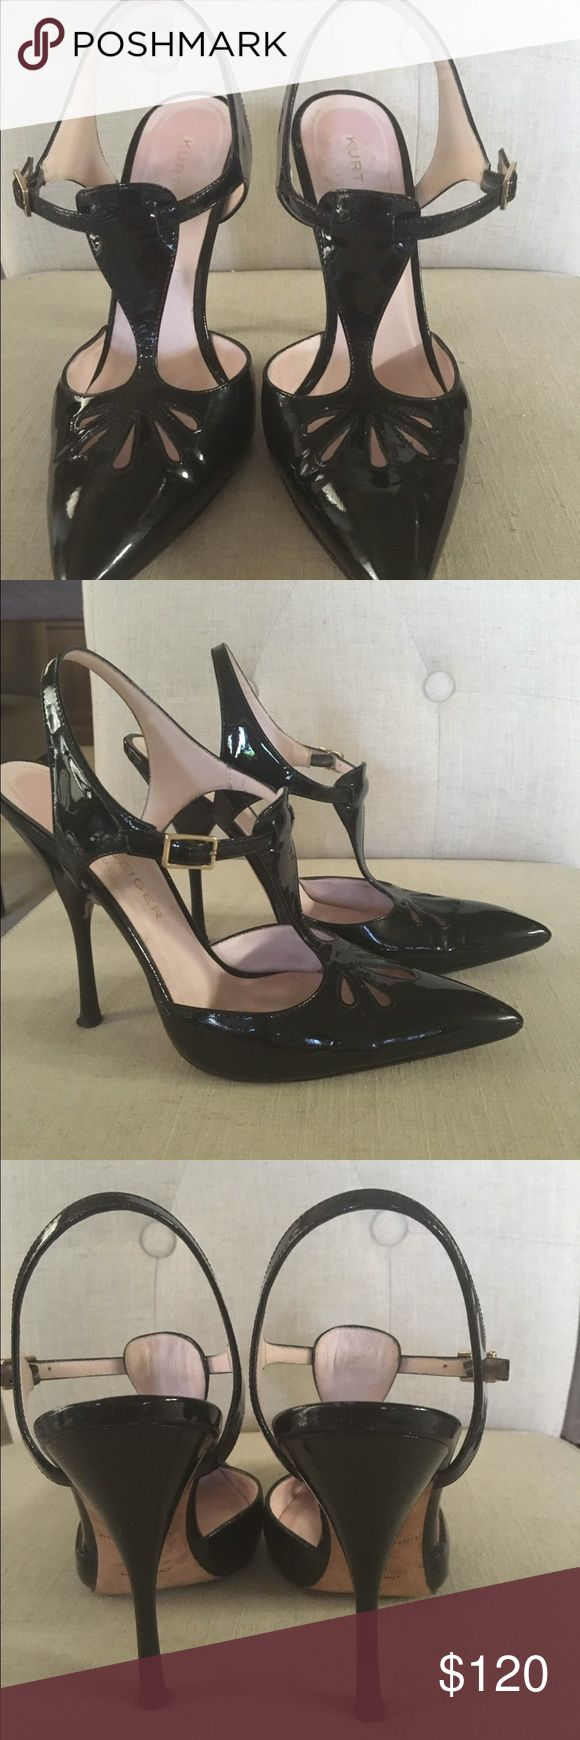 Very classy black patent sling back shoes Super classy sling back pumps by Kurt Geiger London patent leather worn once no sign of wear, shoes with a story , my shoes stolen in London airport , so had to buy shoes , BEST store @ airport Kurt Geiger 💕 kurt geiger Shoes Heels